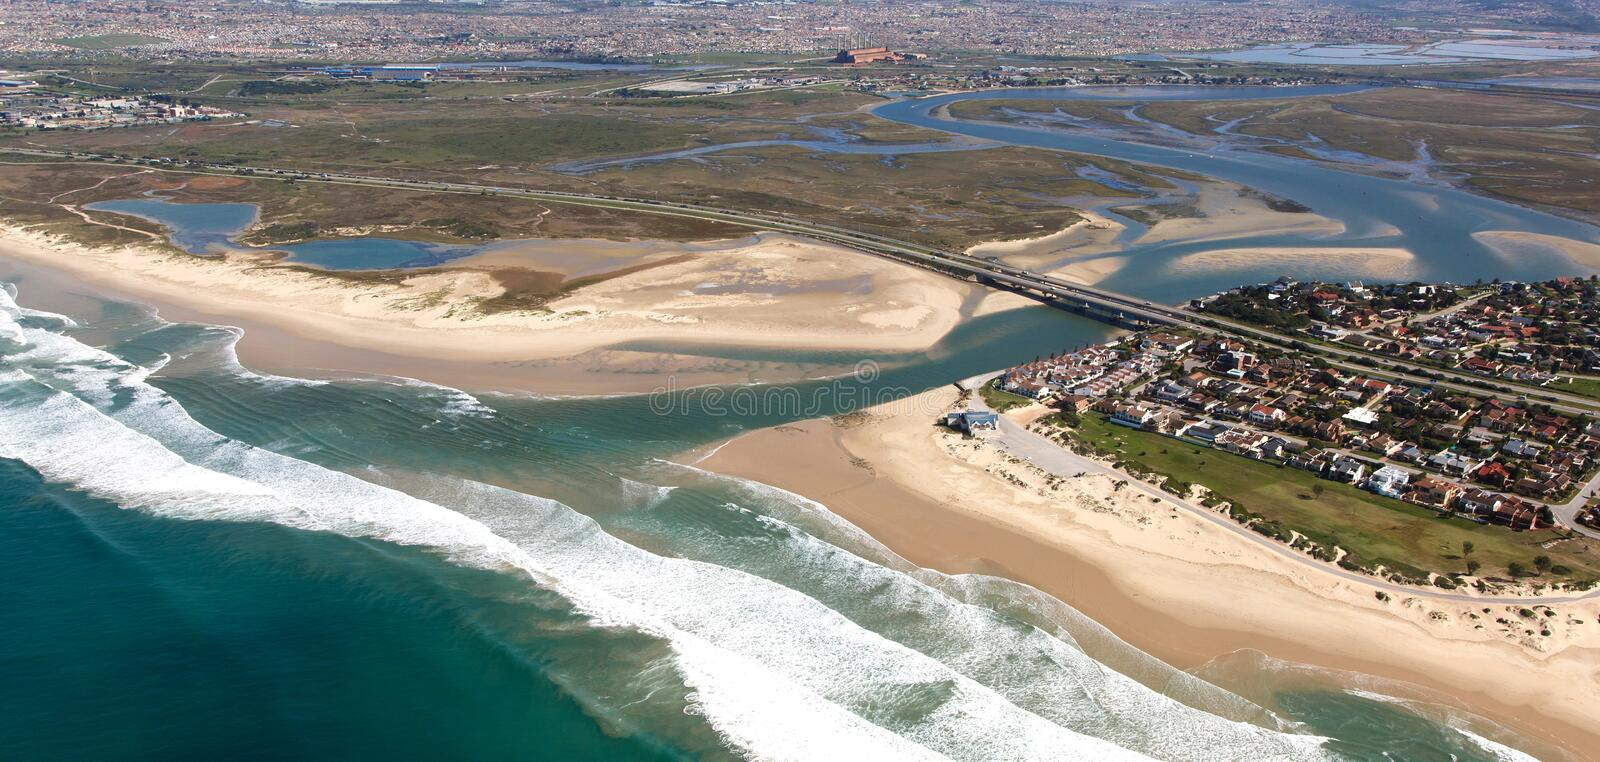 River Mouth and Estuary from the Air. Aerial view of Swartkops River mouth and estuary in South Africa stock photos